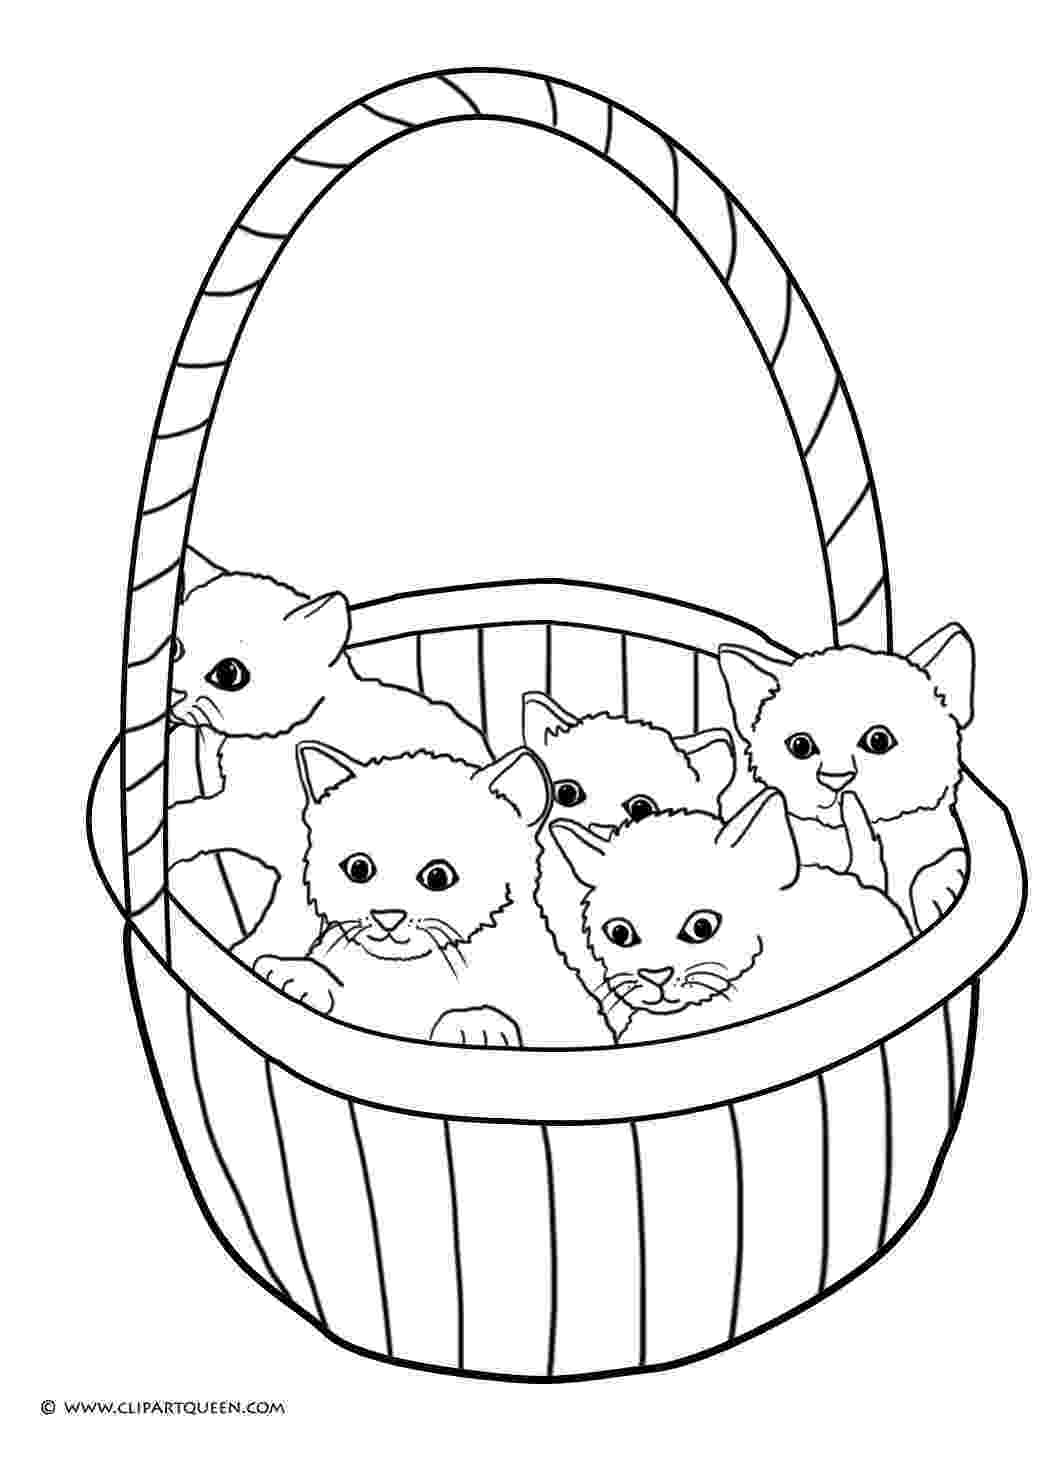 coloring pages of kittens kitten coloring pages to download and print for free pages kittens coloring of 1 1